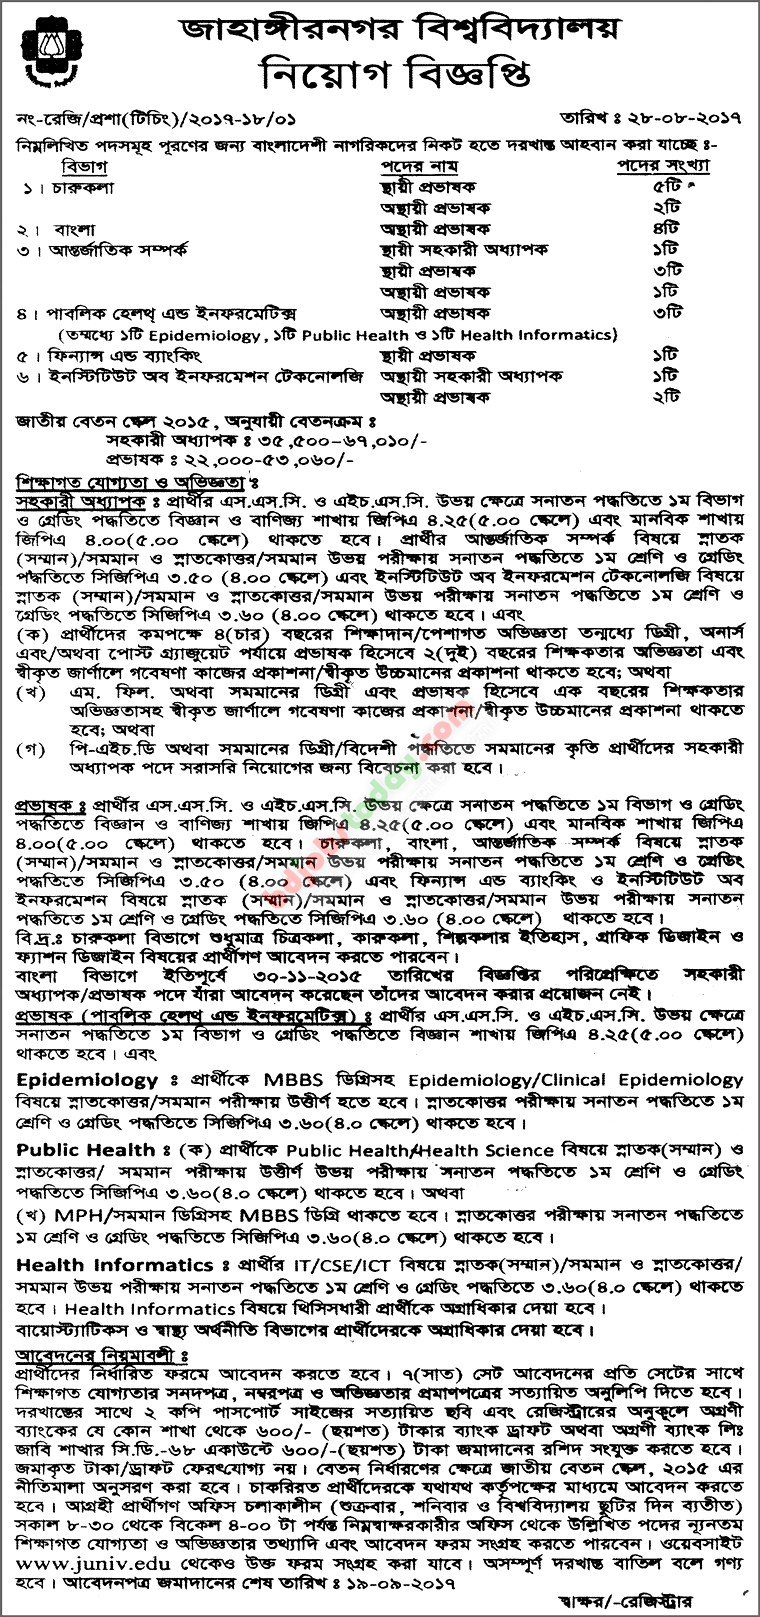 Jahangirnagar University jobs